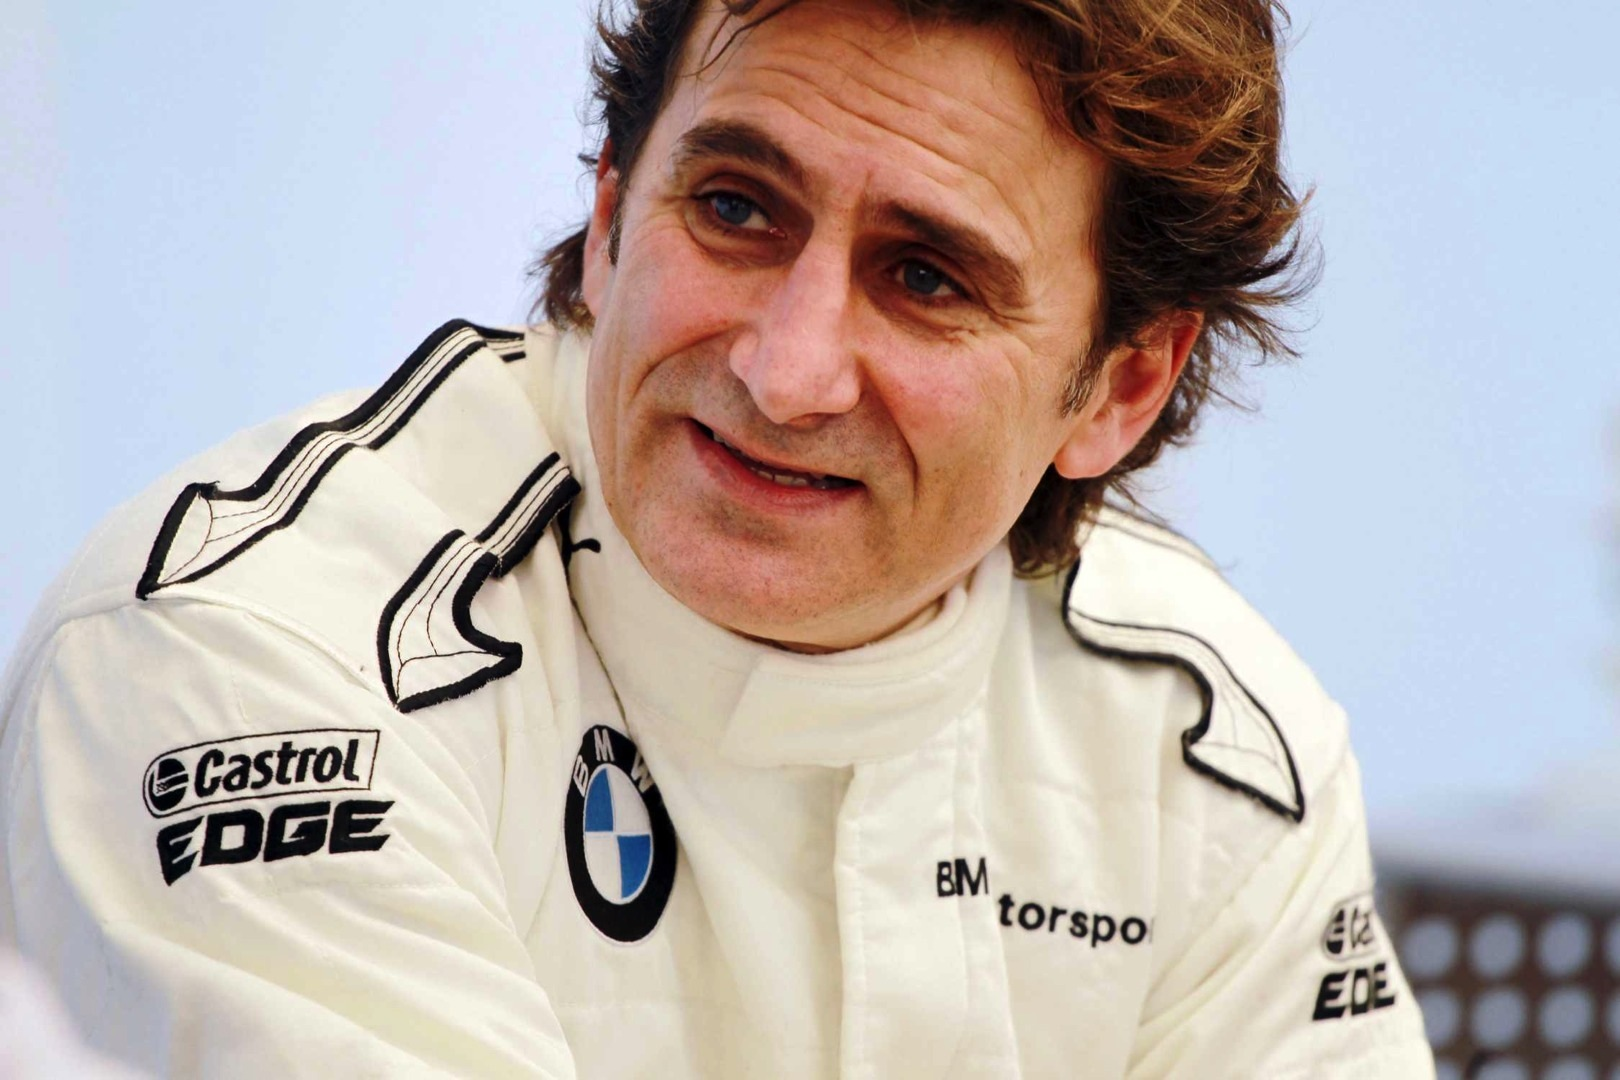 Alessandro Zanardi Back In A Bmw Cockpit This Season